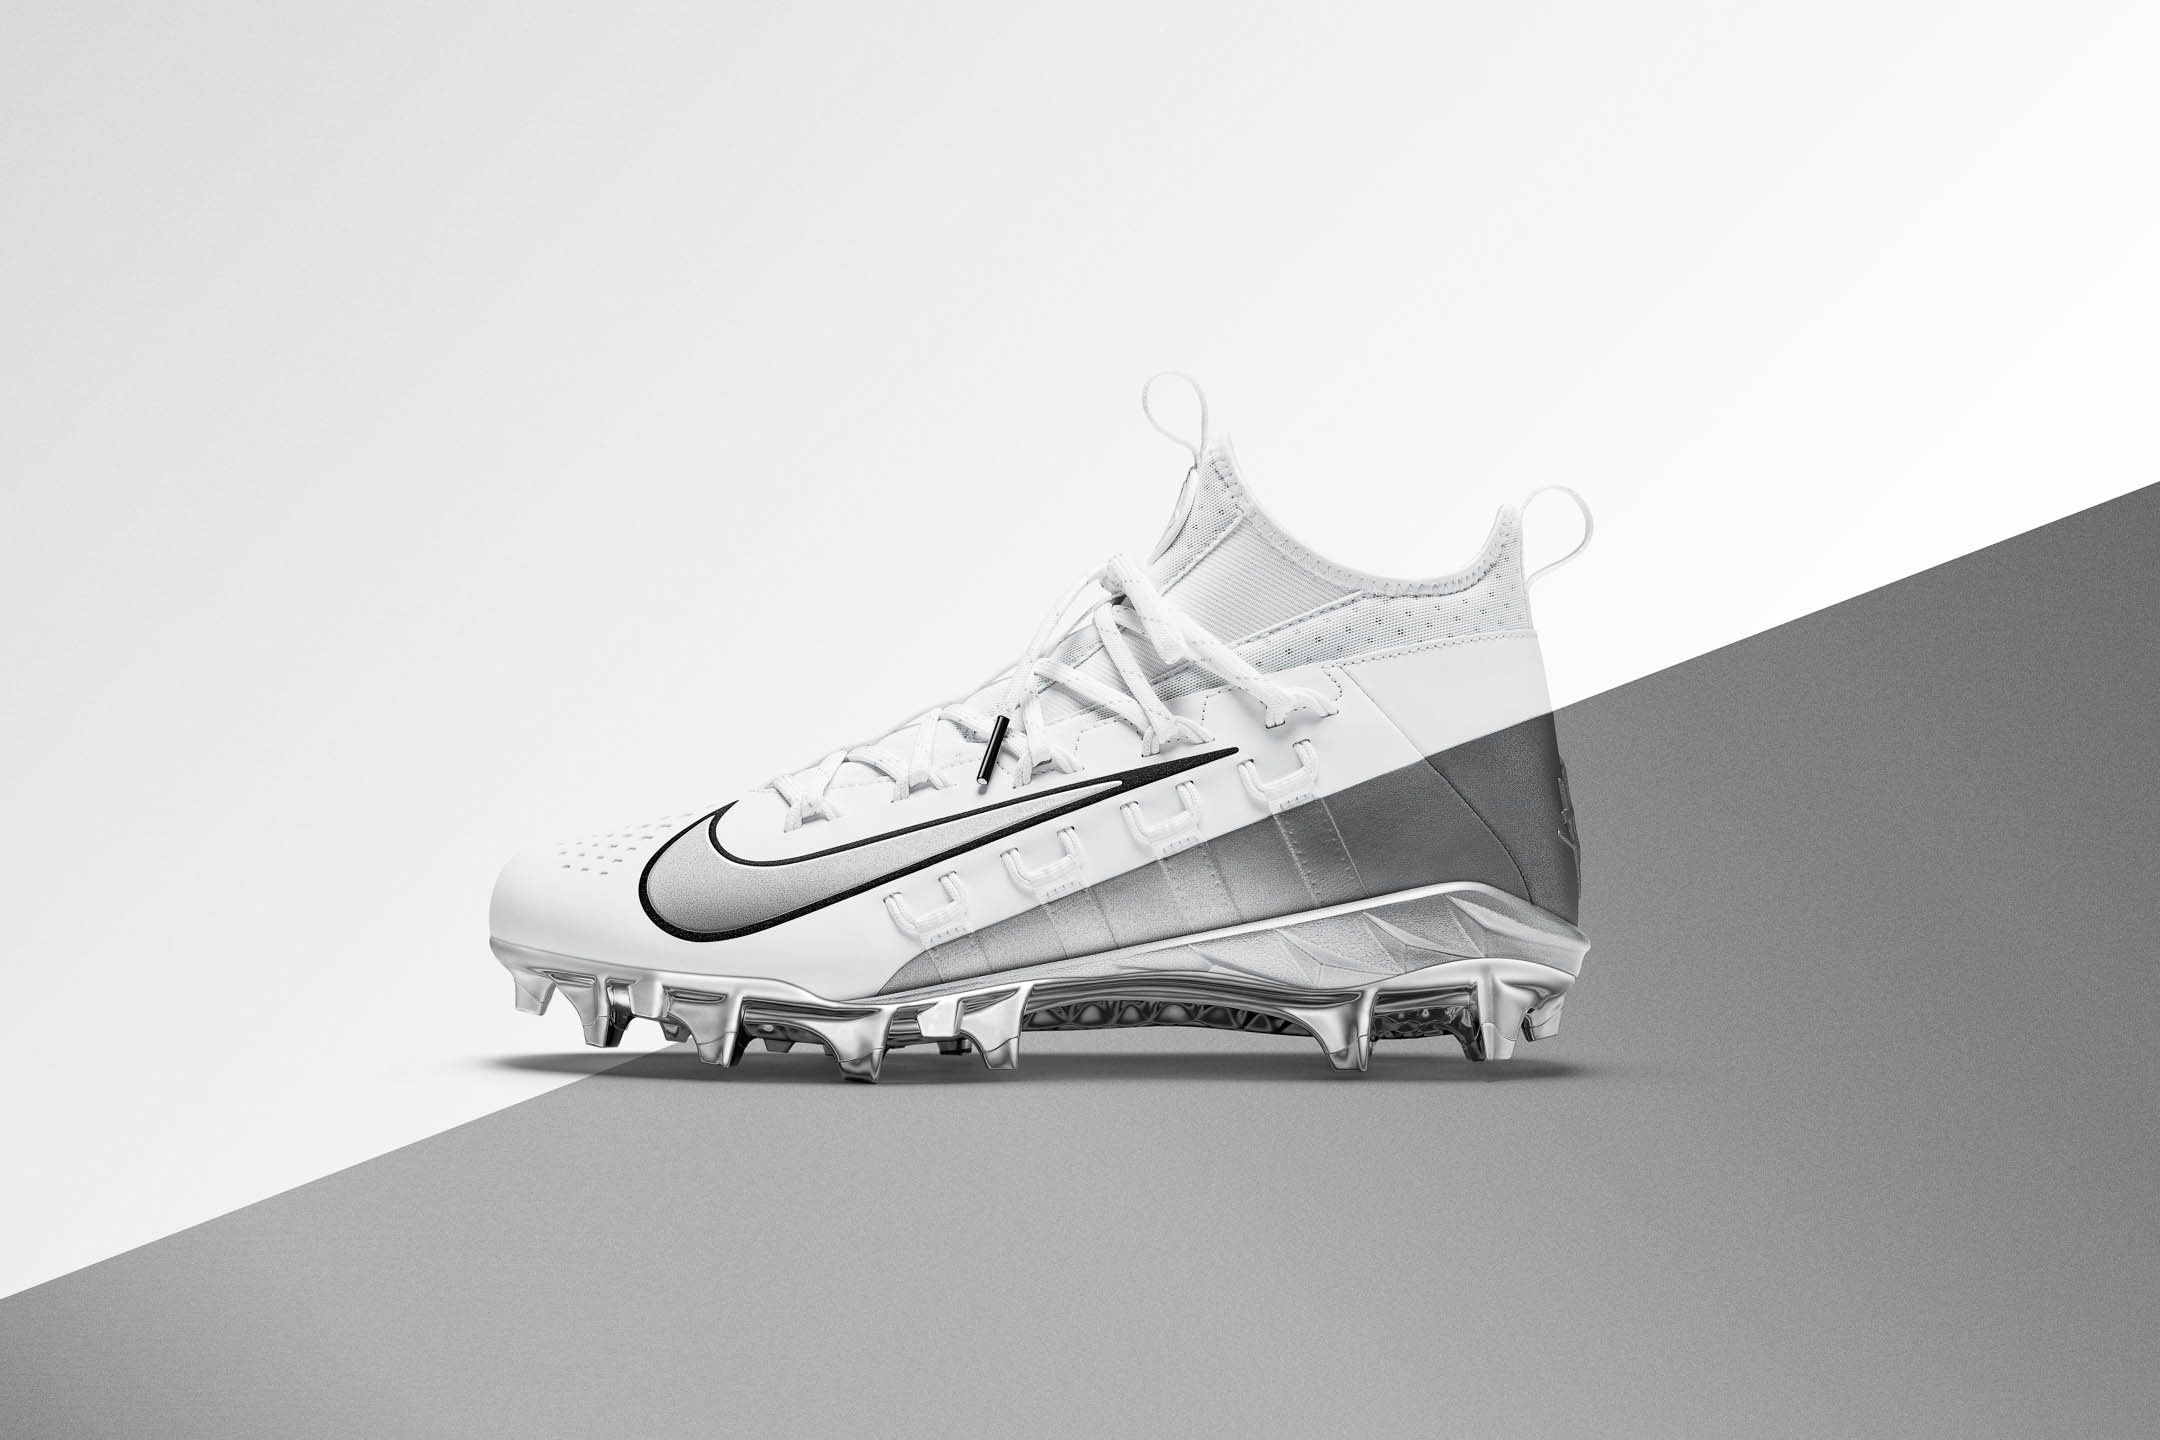 Nike Lacrosse cleat